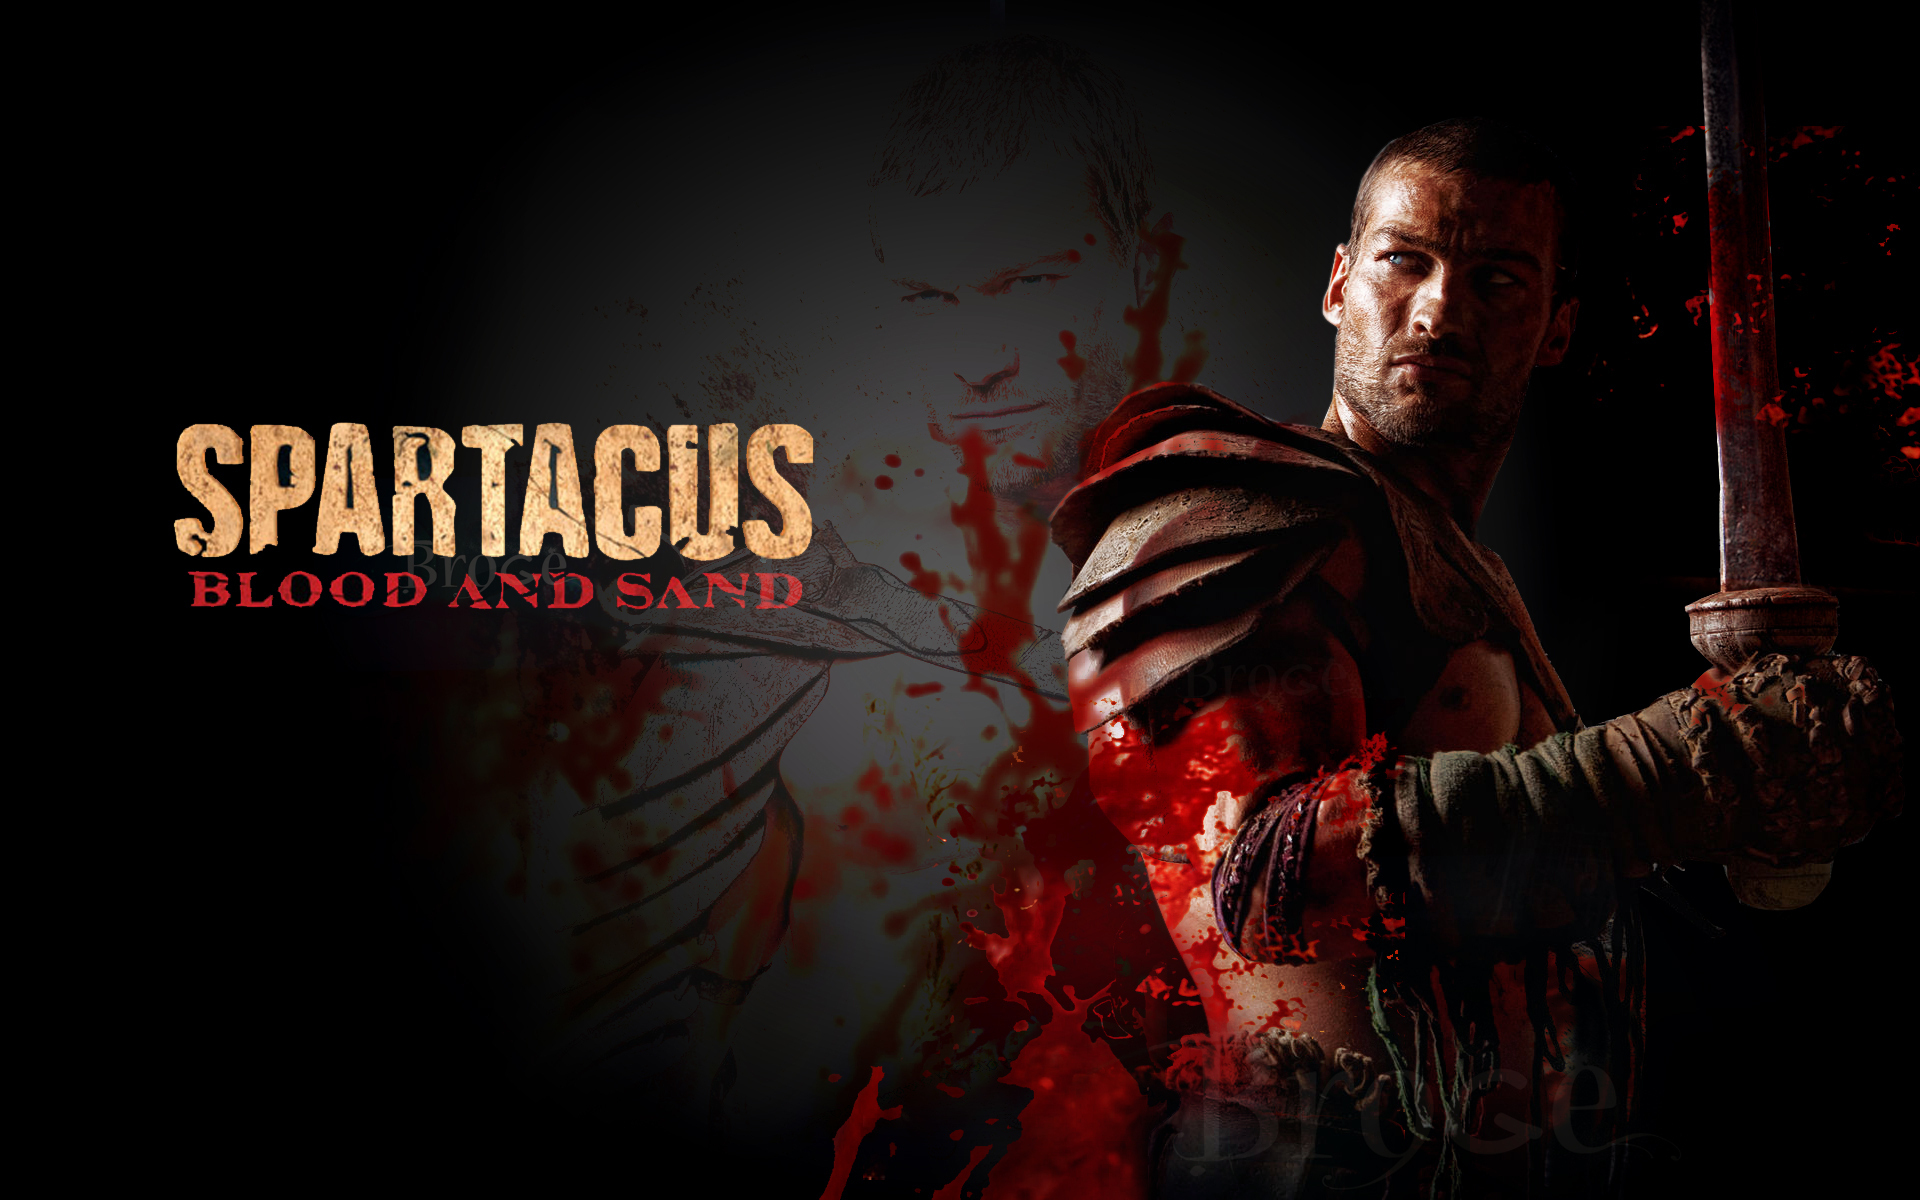 Spartacus vengeance 3x4 online dating